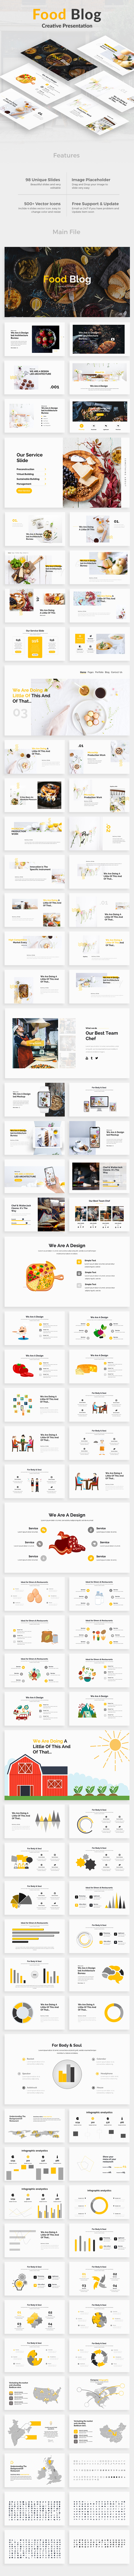 Food Blog Powerpoint Template - Creative PowerPoint Templates